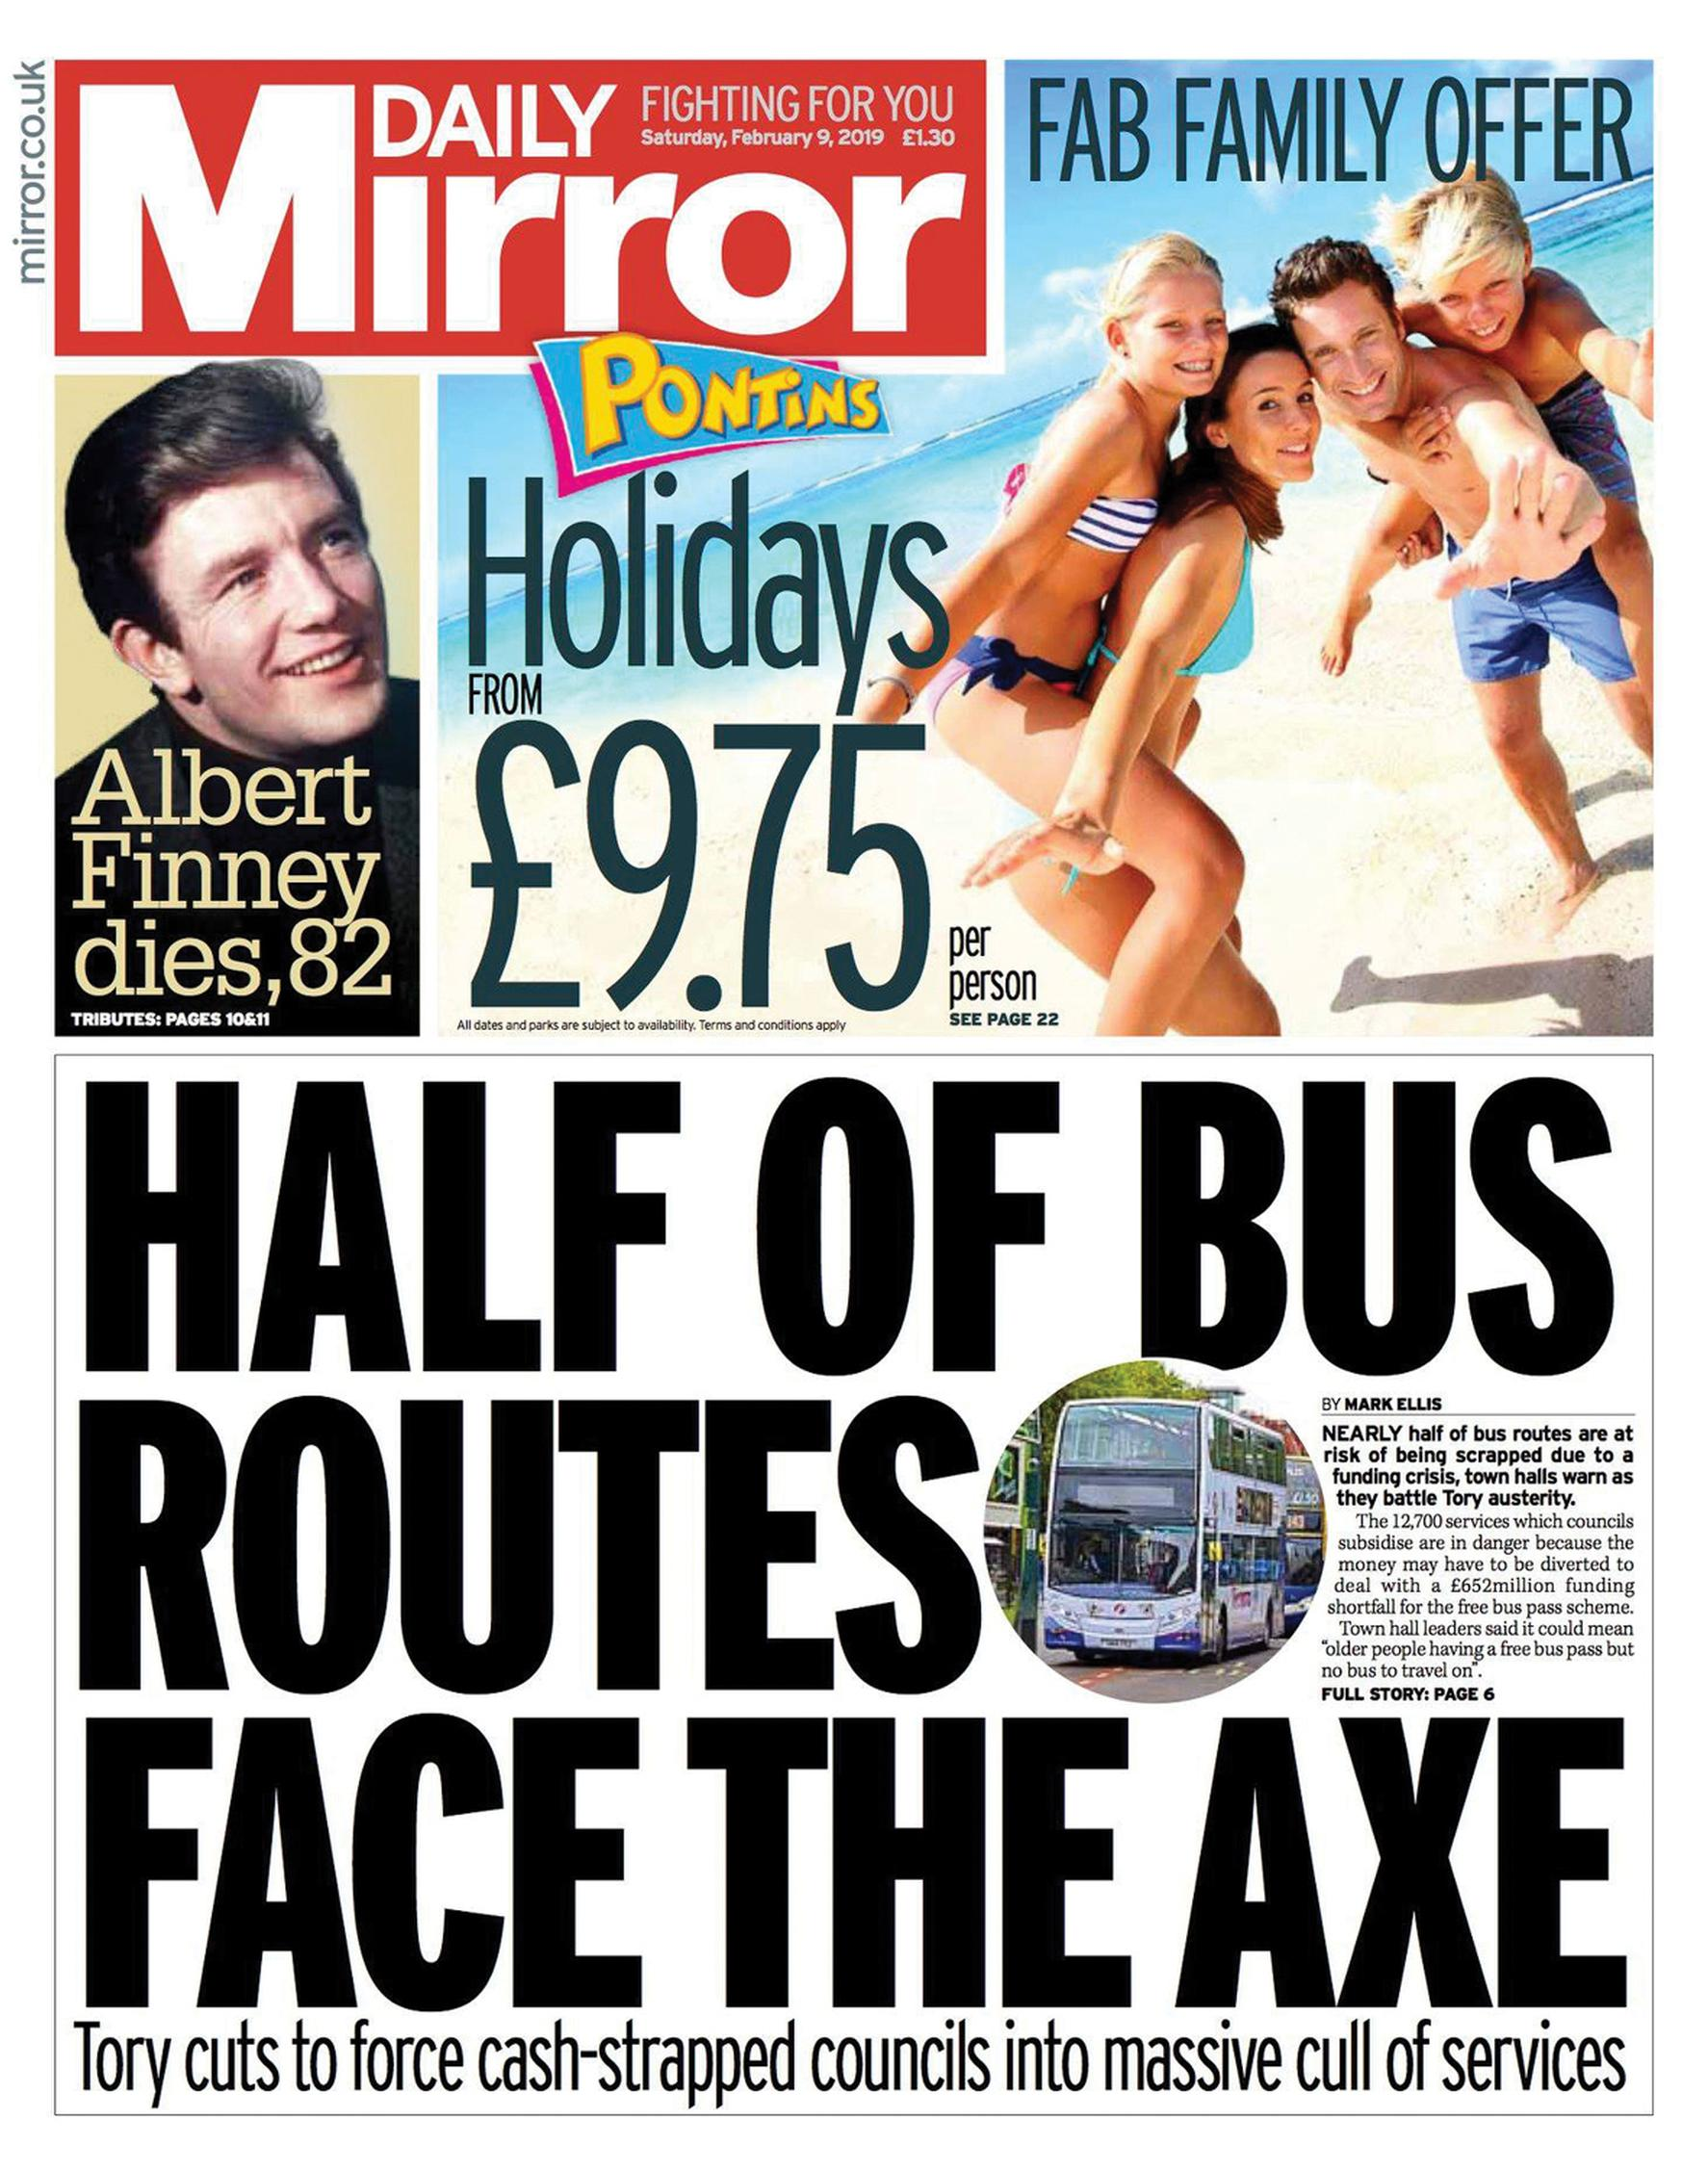 HS2 cash should fund buses, says Guardian, as Mirror warns of huge cuts